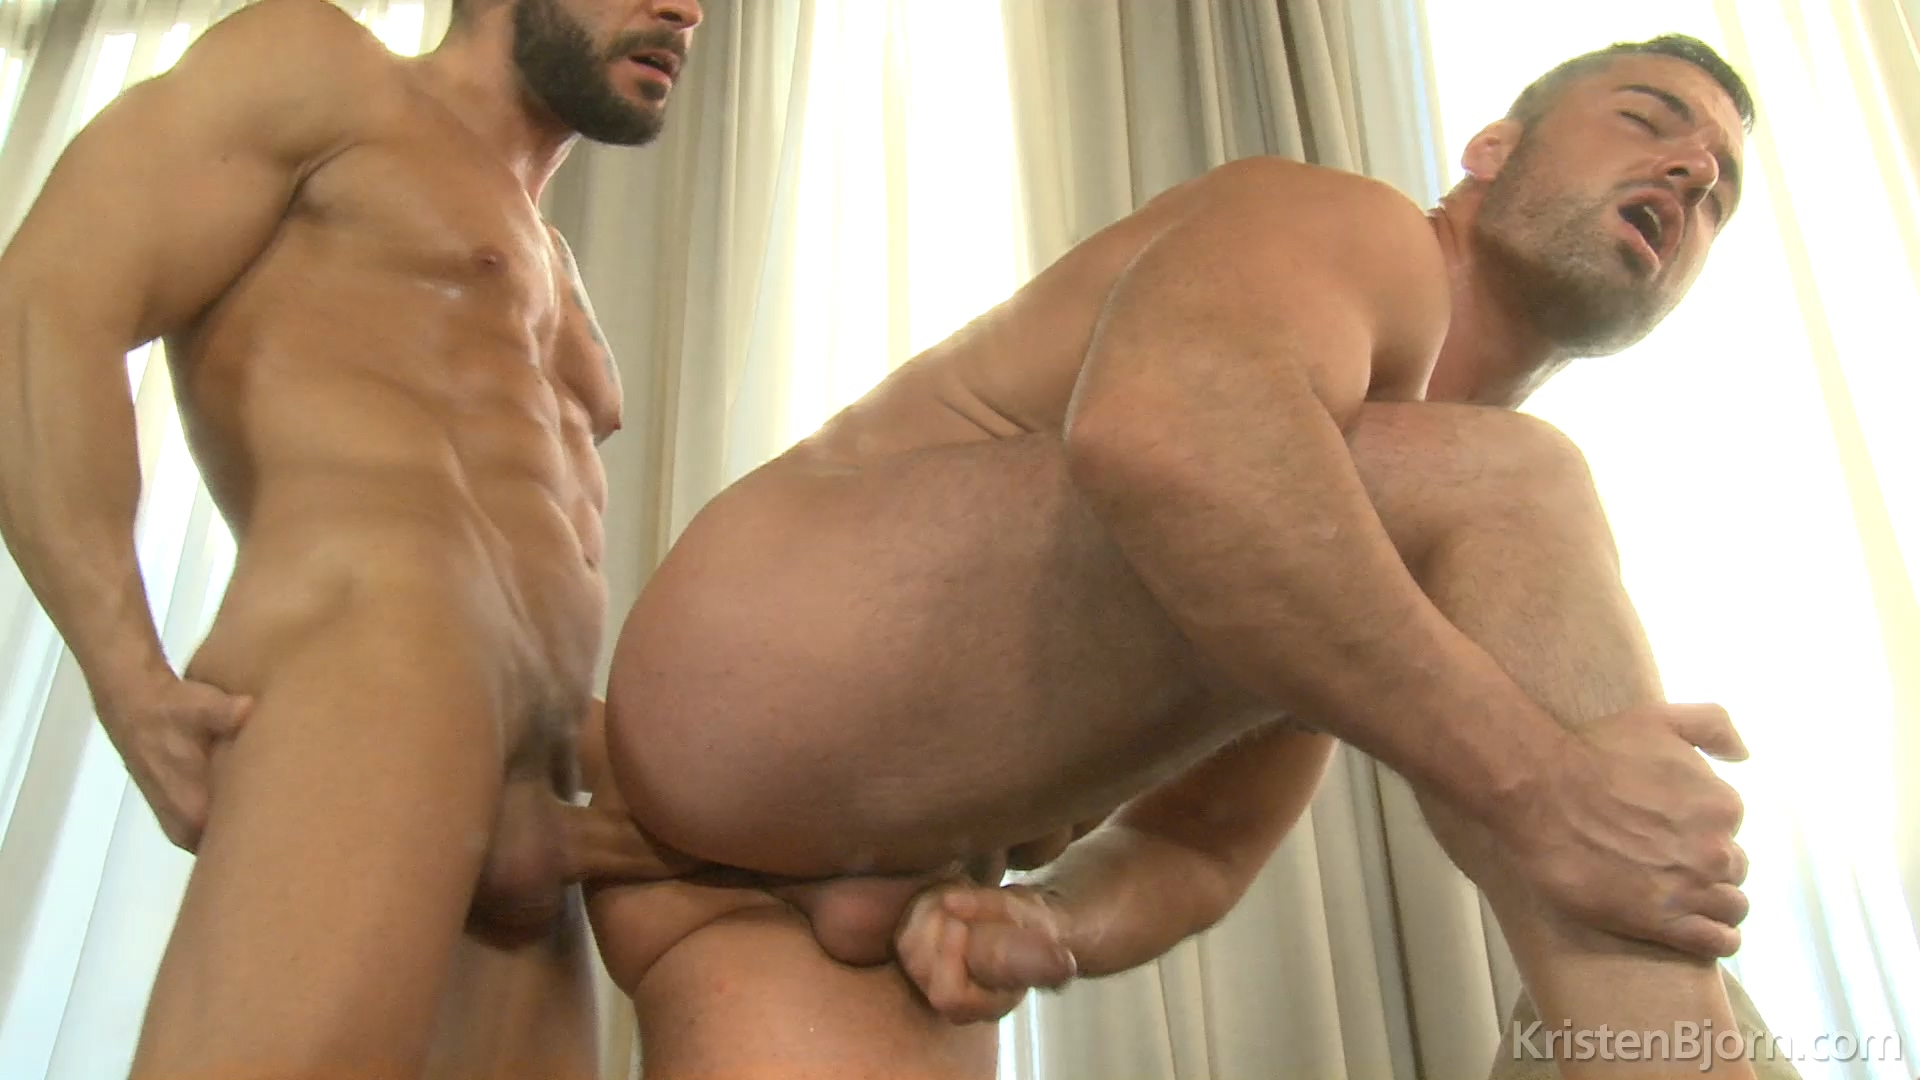 Austin and dylan couple gay porn josh 5